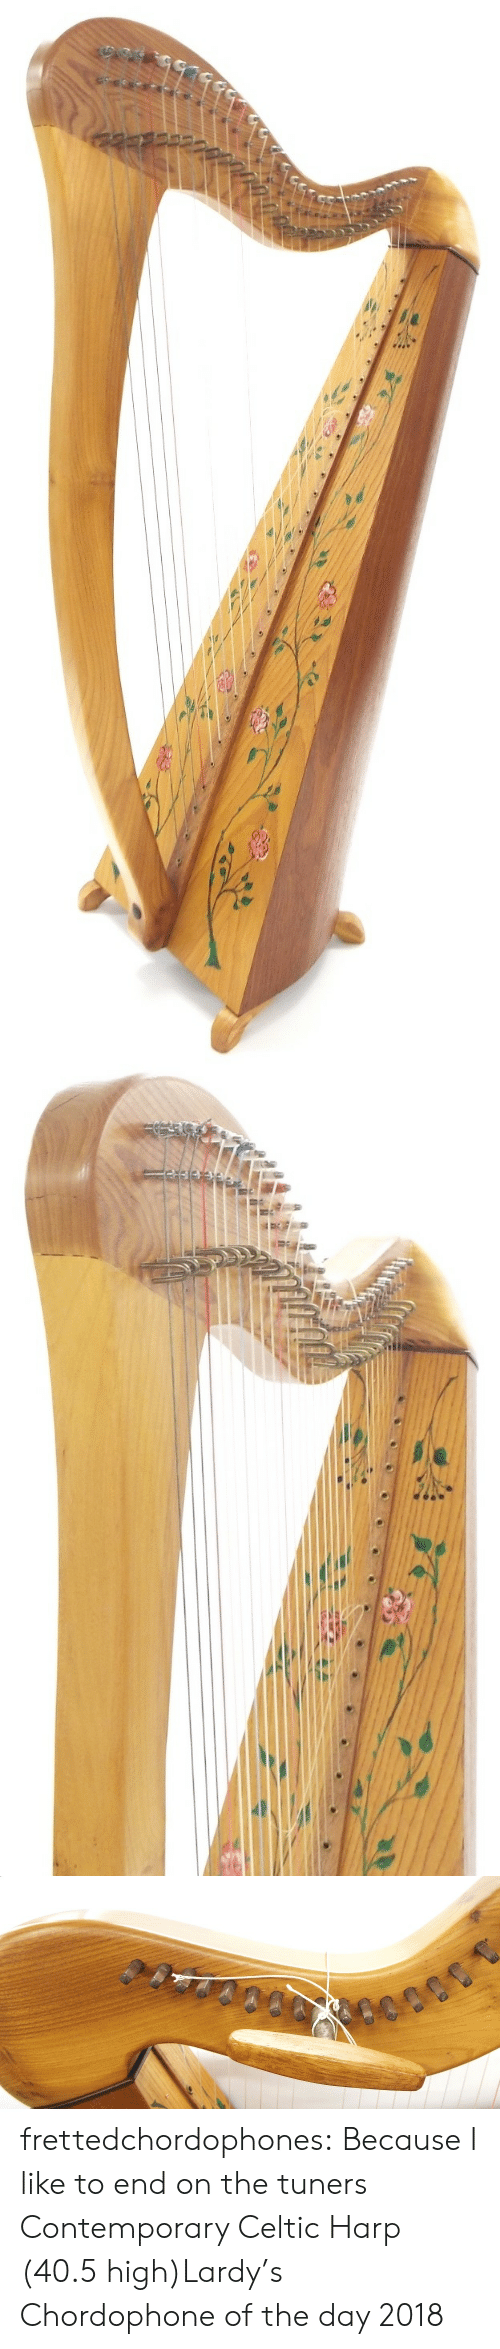 Celtic: frettedchordophones:  Because I like to end on the tuners  Contemporary Celtic Harp (40.5 high)Lardy's Chordophone of the day 2018